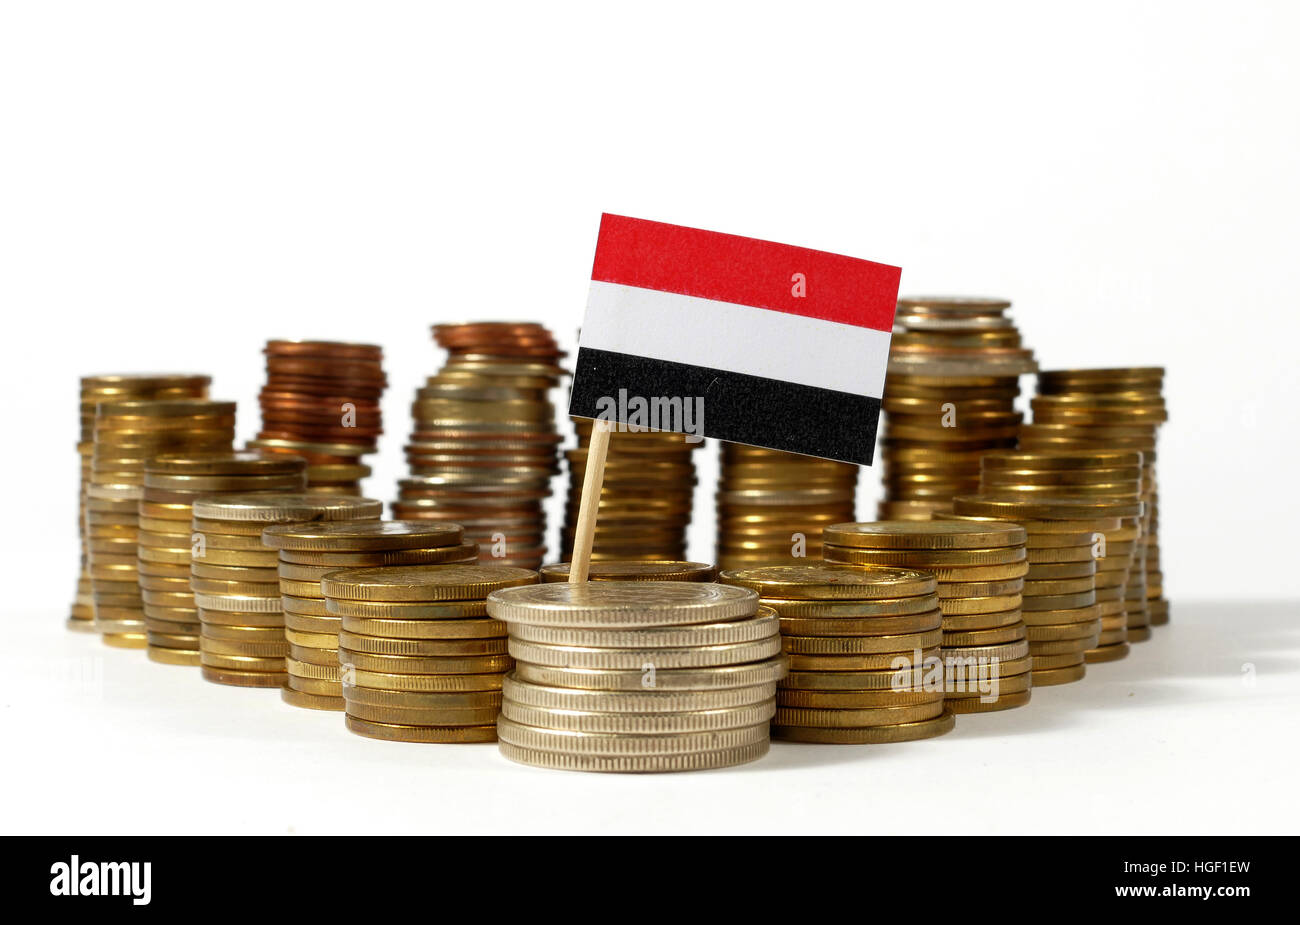 Yemen flag waving with stack of money coins - Stock Image